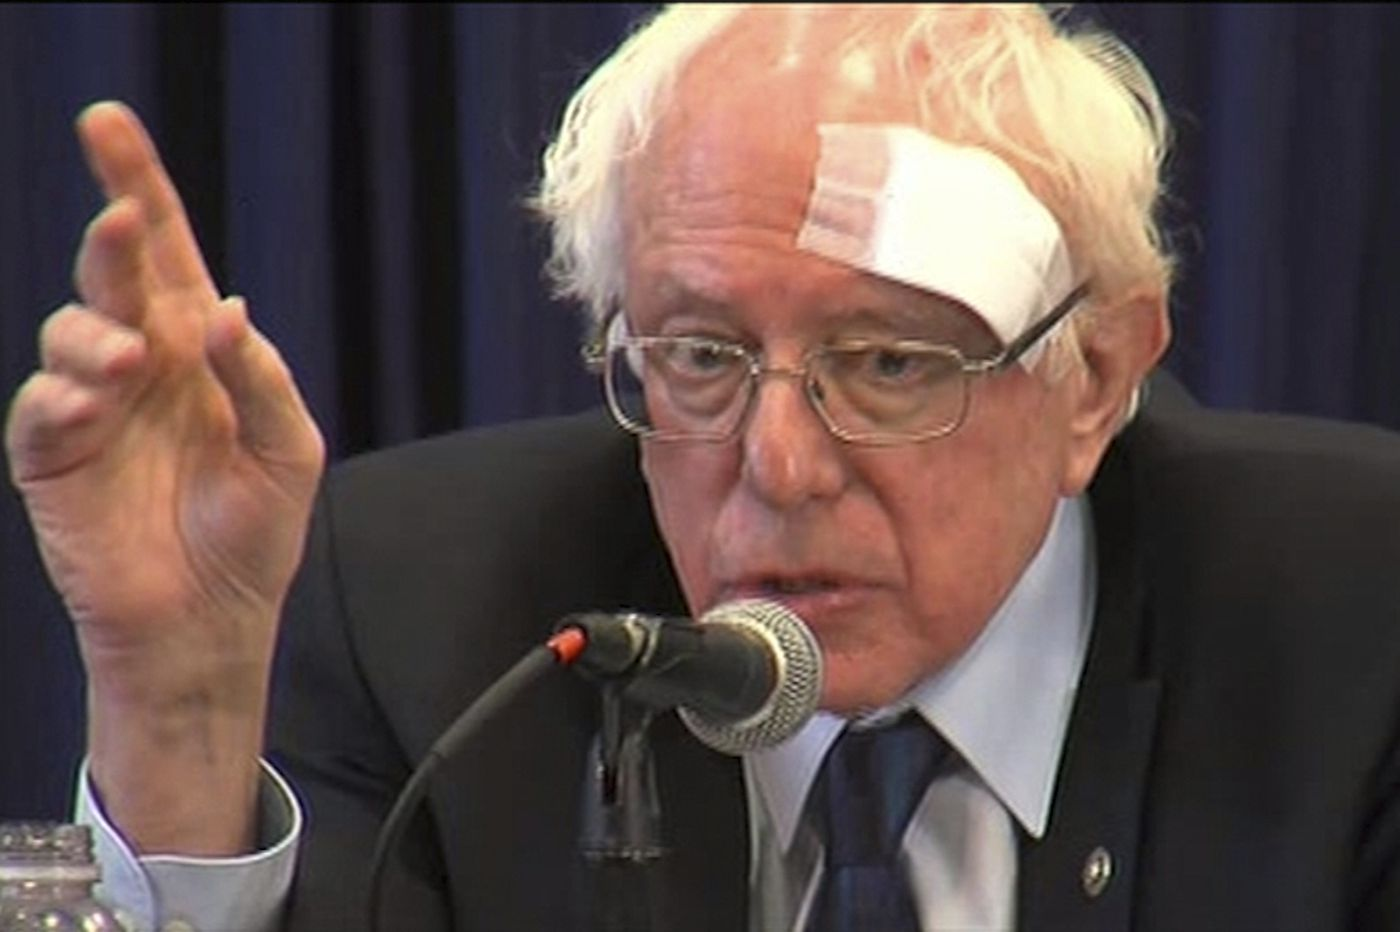 Sanders gets stitches after run-in with glass shower door